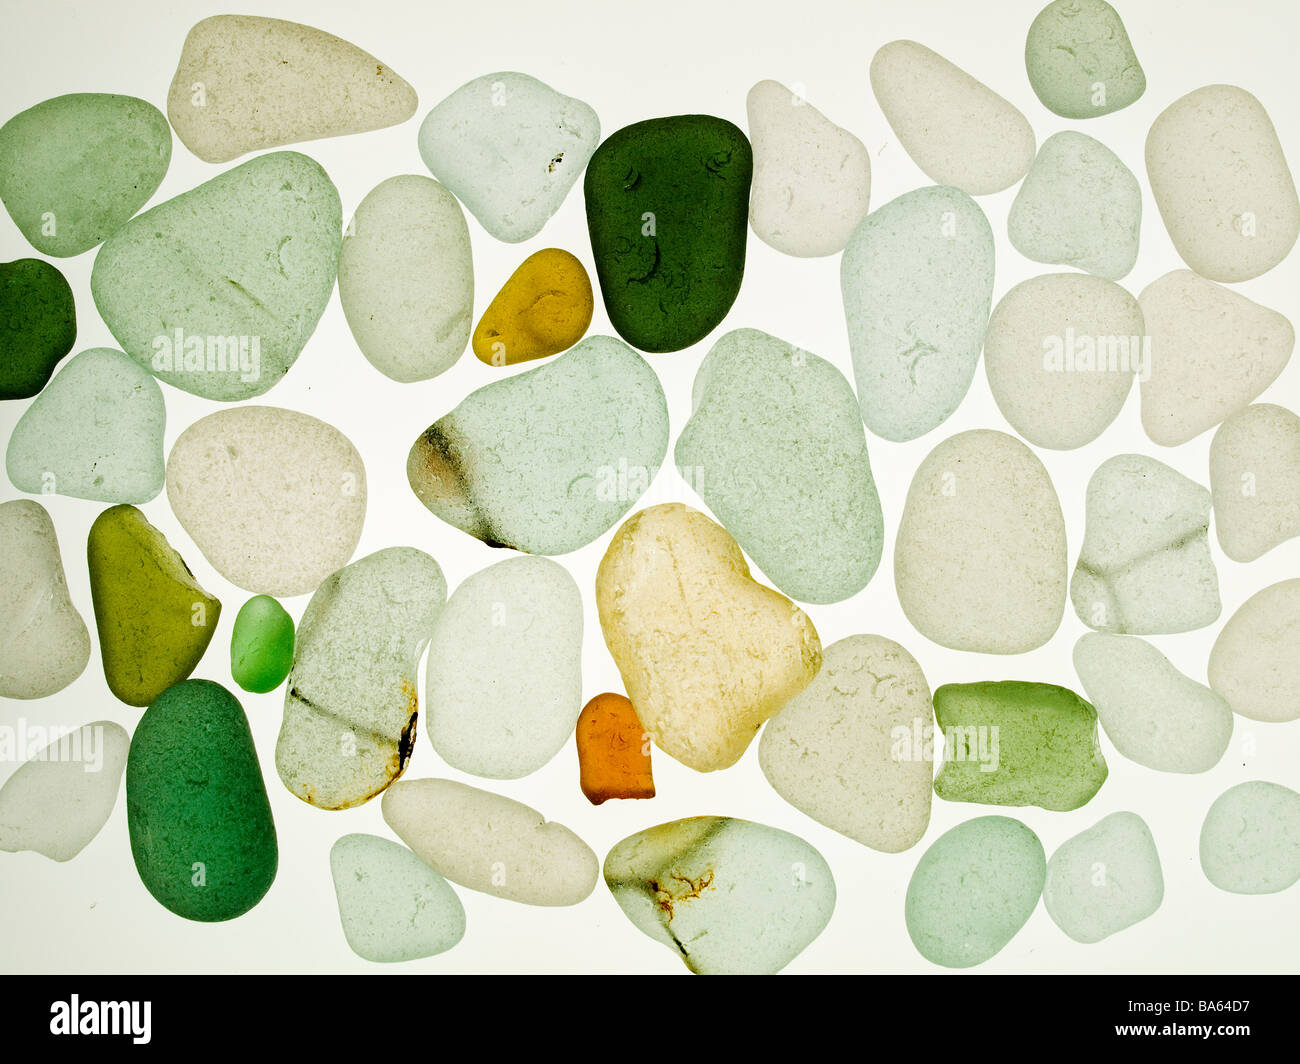 Sea worn glass pebbles collected from a beach displayed on a light box aka 'mermaids tears' and used for - Stock Image